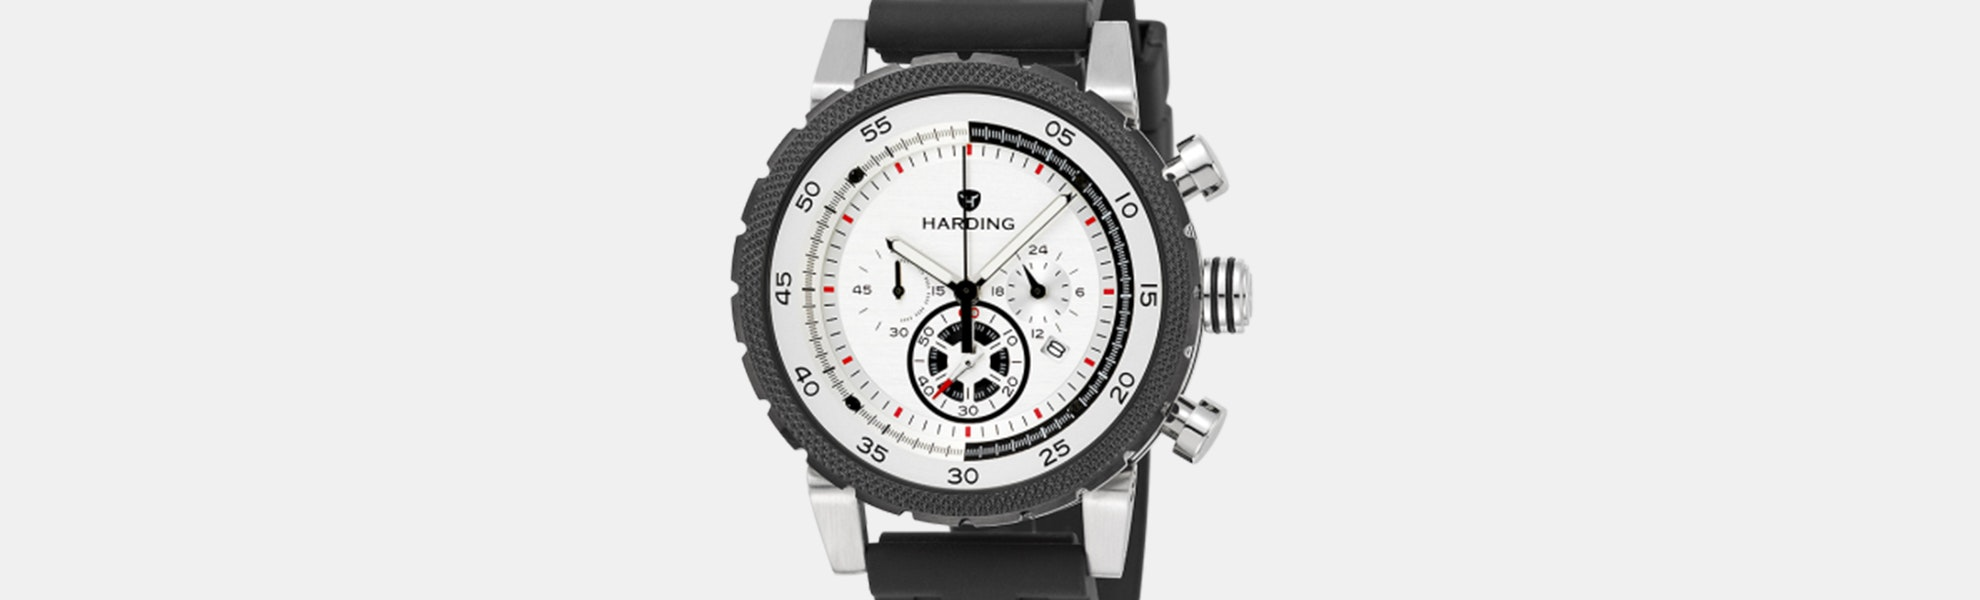 Harding Speedmax HS05 Quartz Watch